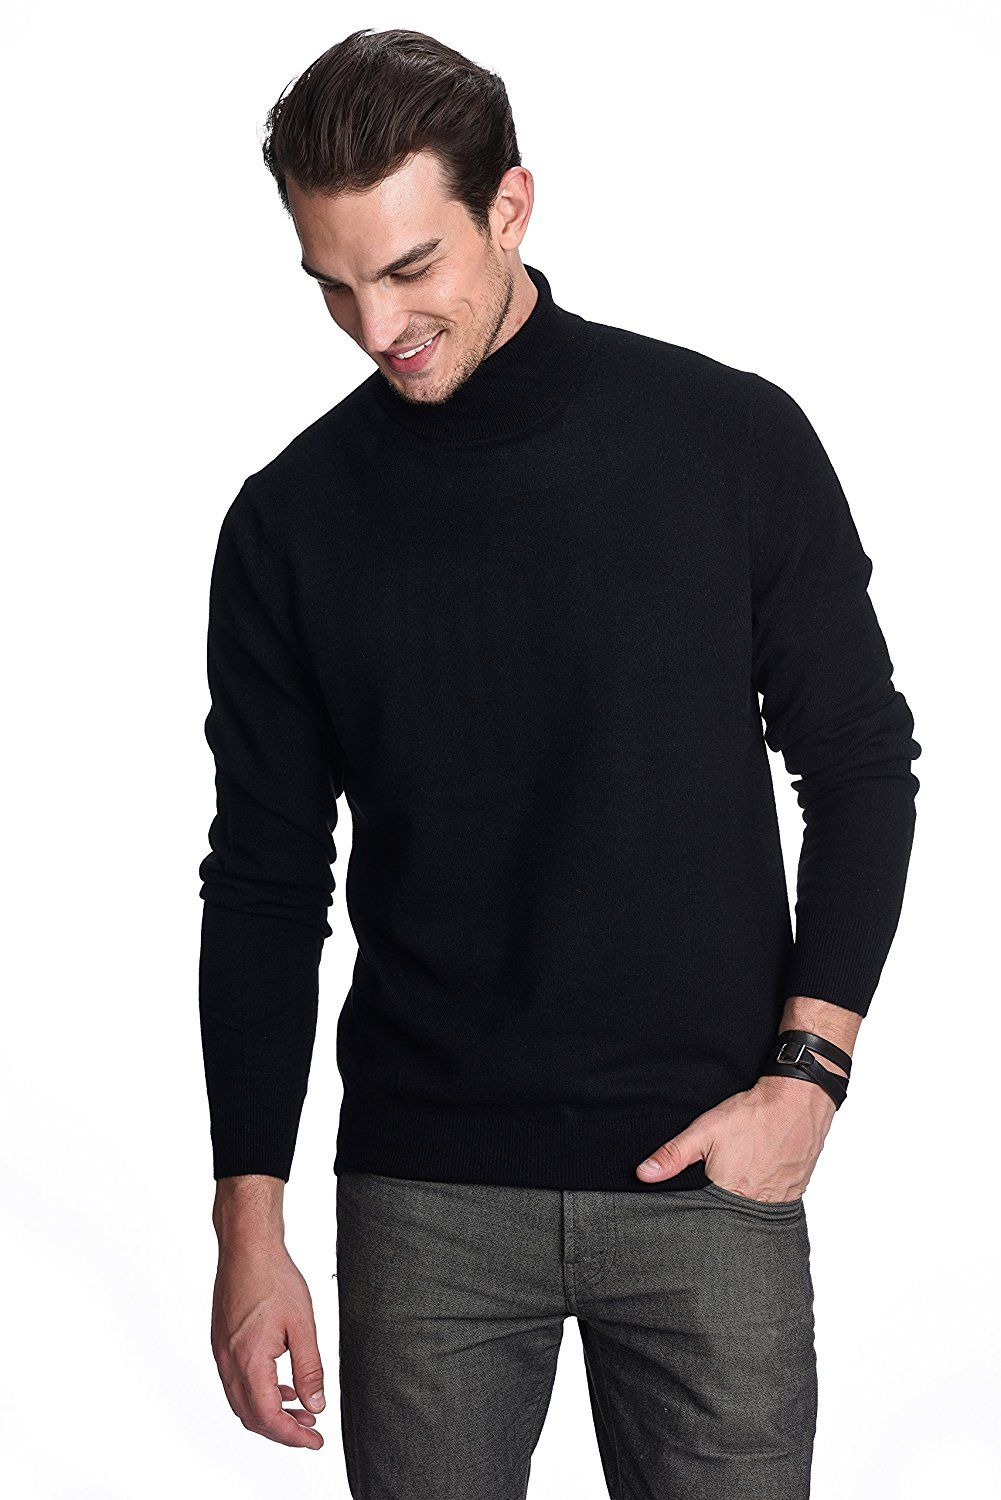 1776446e7ac State Cashmere Men s 100% Pure Cashmere Turtleneck Long Sleeve Pullover  Sweater at Amazon Men s Clothing